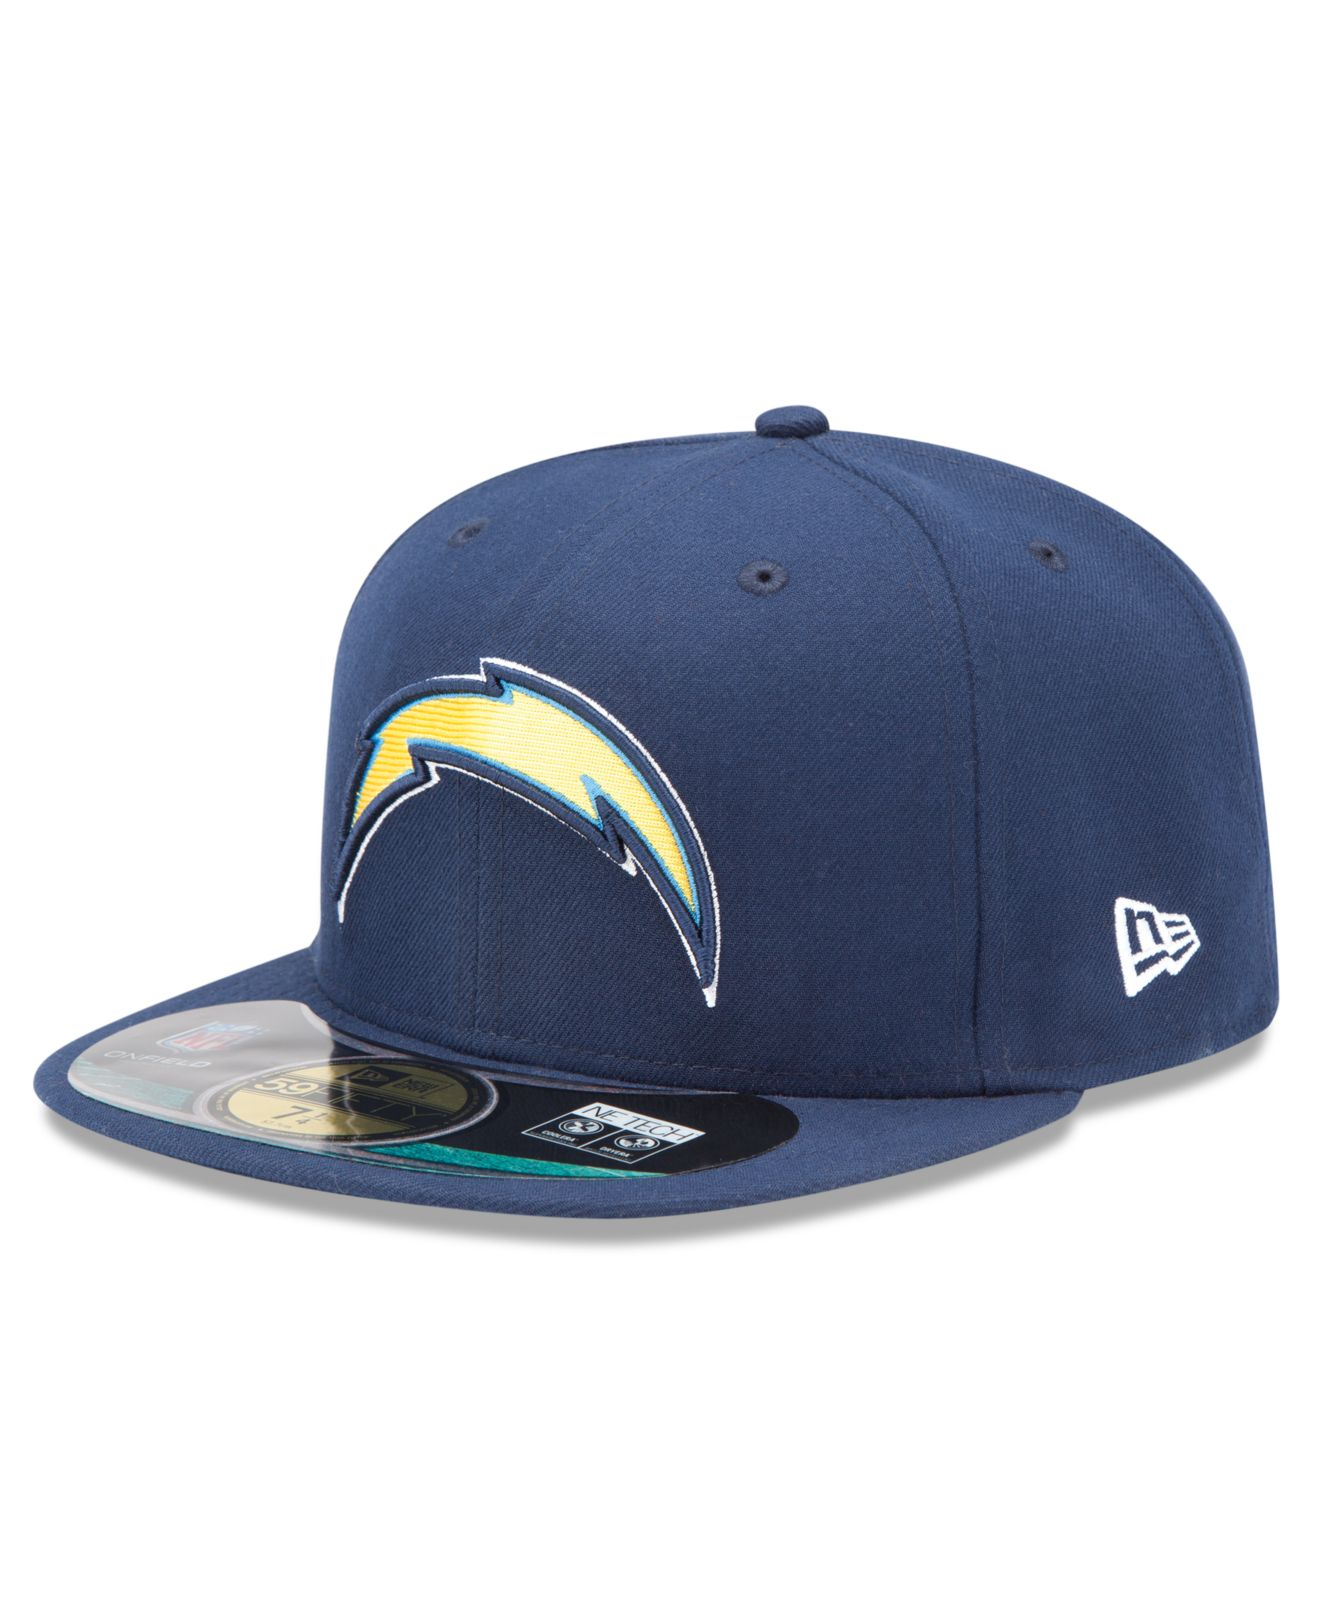 San Diego Chargers Cap: Ktz San Diego Chargers On-field 59fifty Fitted Cap